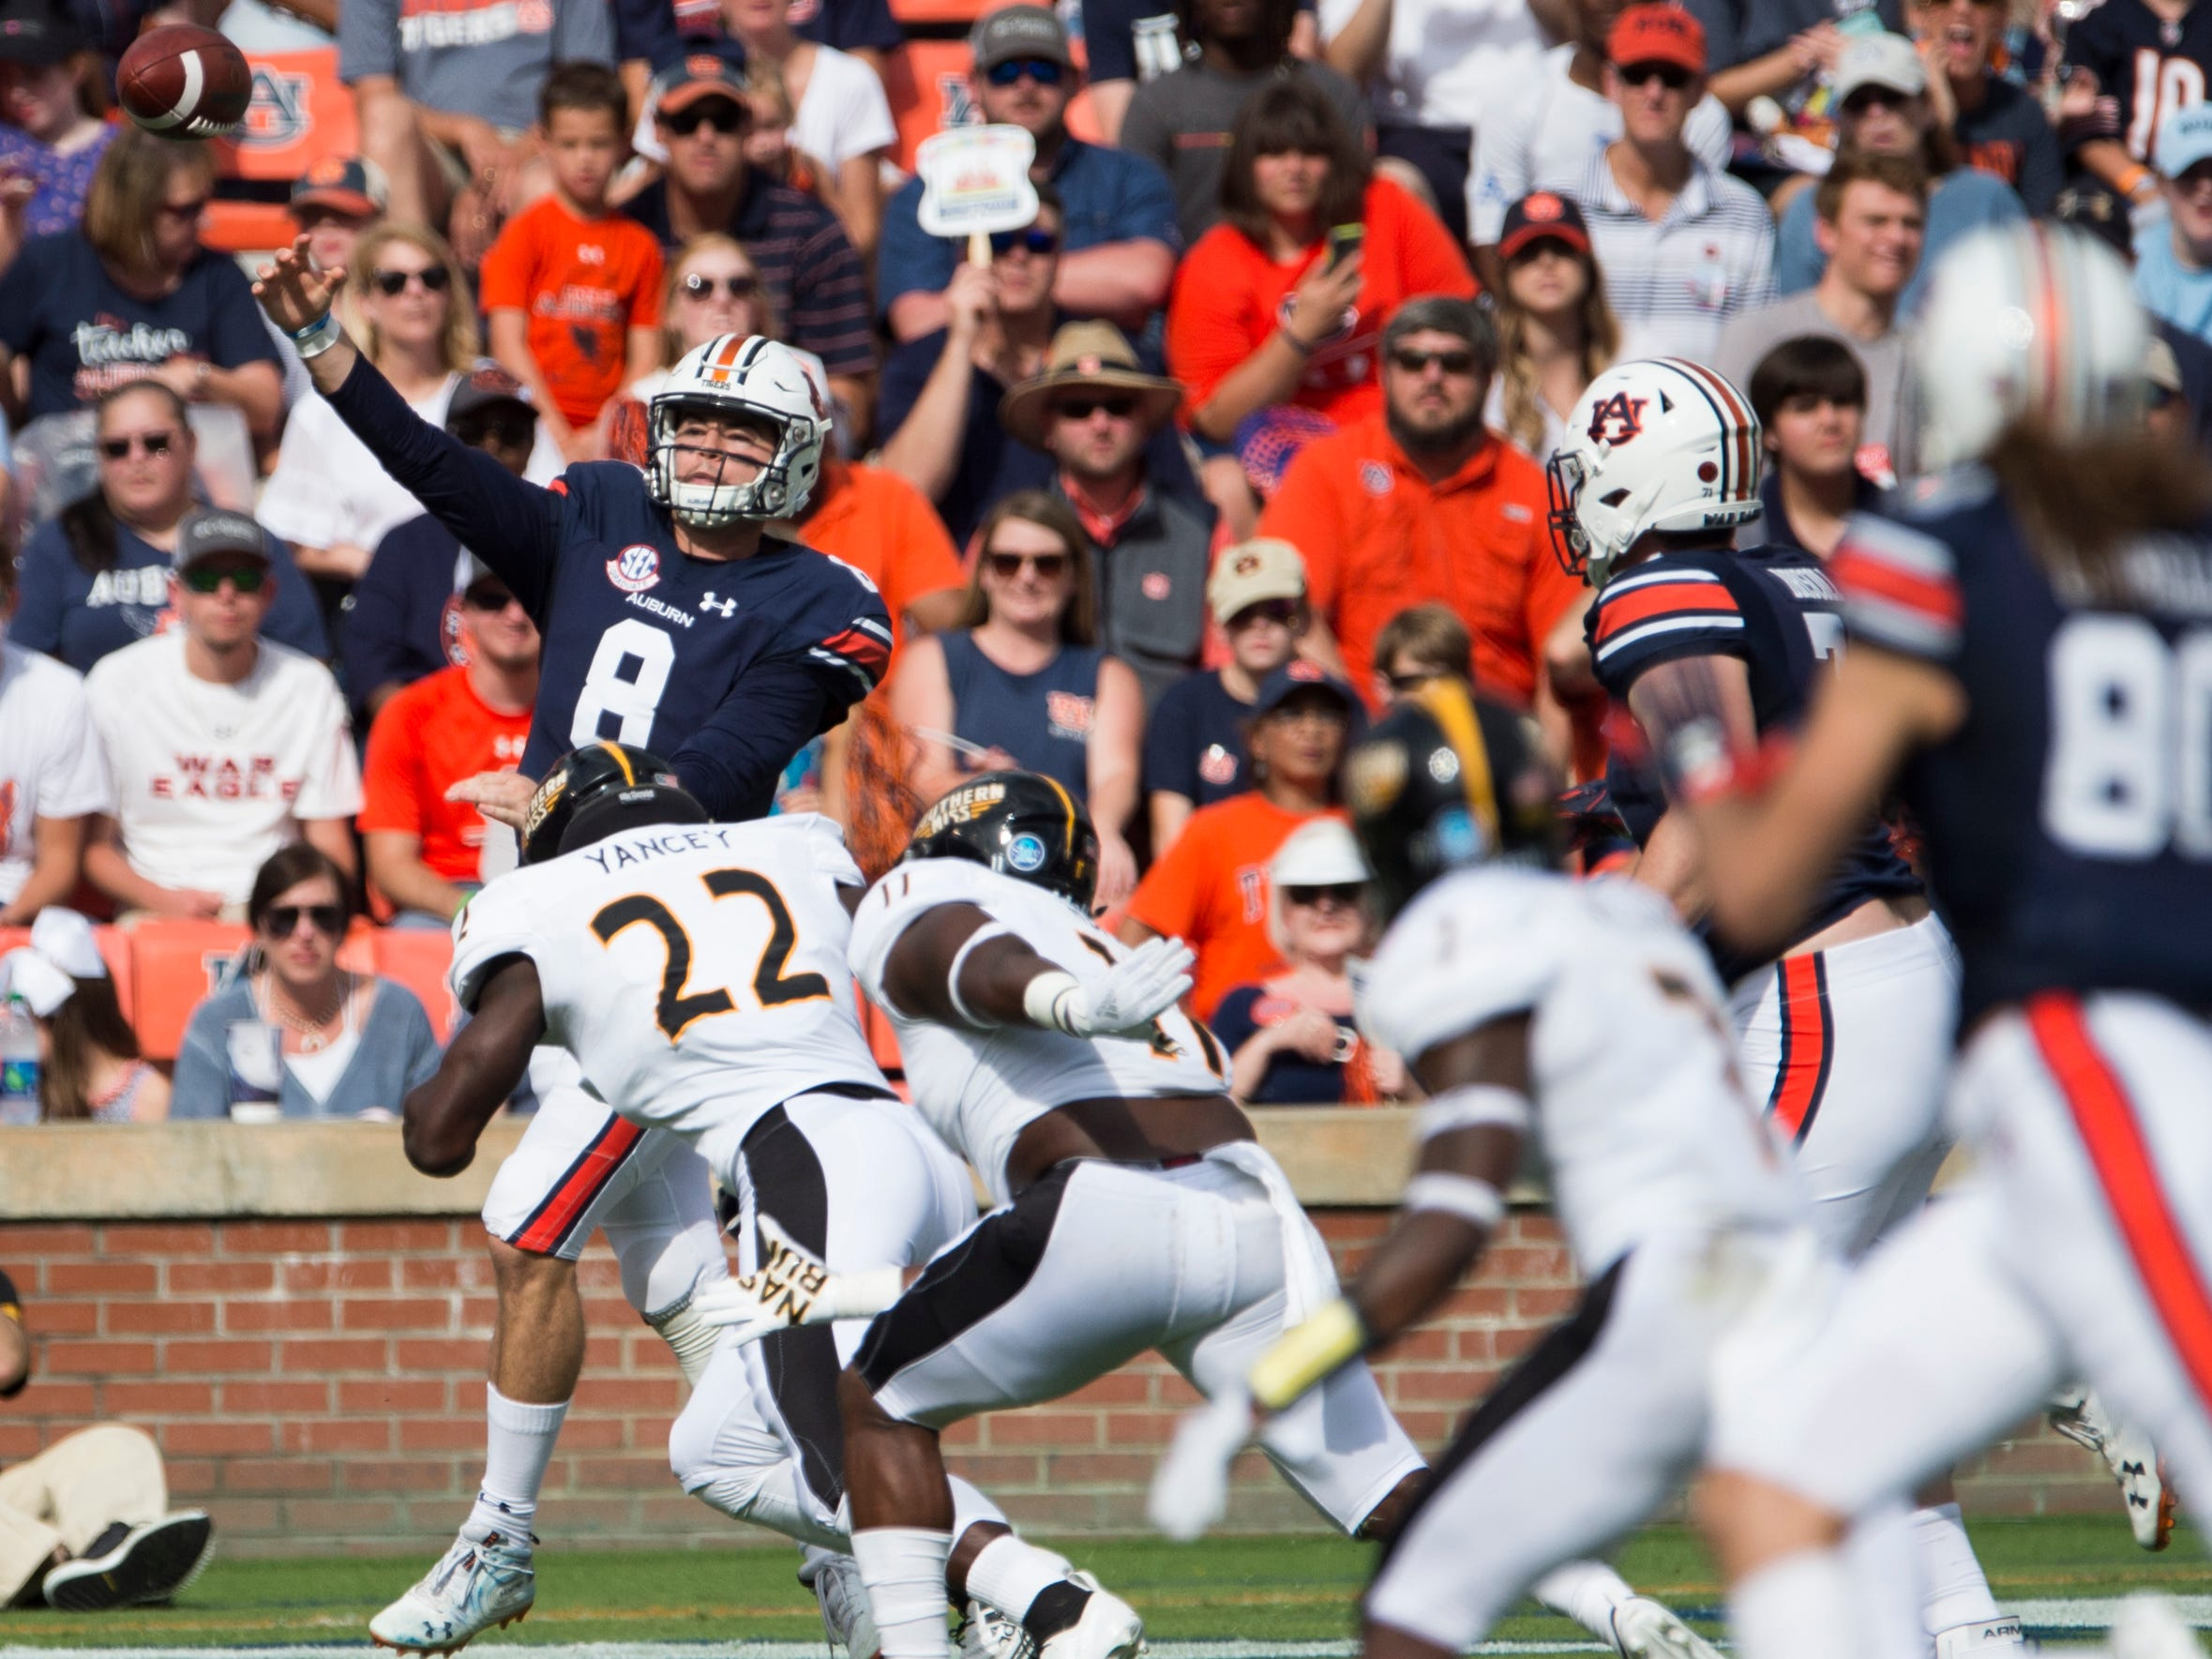 Auburn's Jarrett Stidham (8) throws the ball under pressure against Southern Miss at Jordan-Hare Stadium in Auburn, Ala., on Saturday, Sept. 29, 2018. Auburn leads Southern Miss 14-3, the game went into a weather delay with 4:27 left in the second quarter.